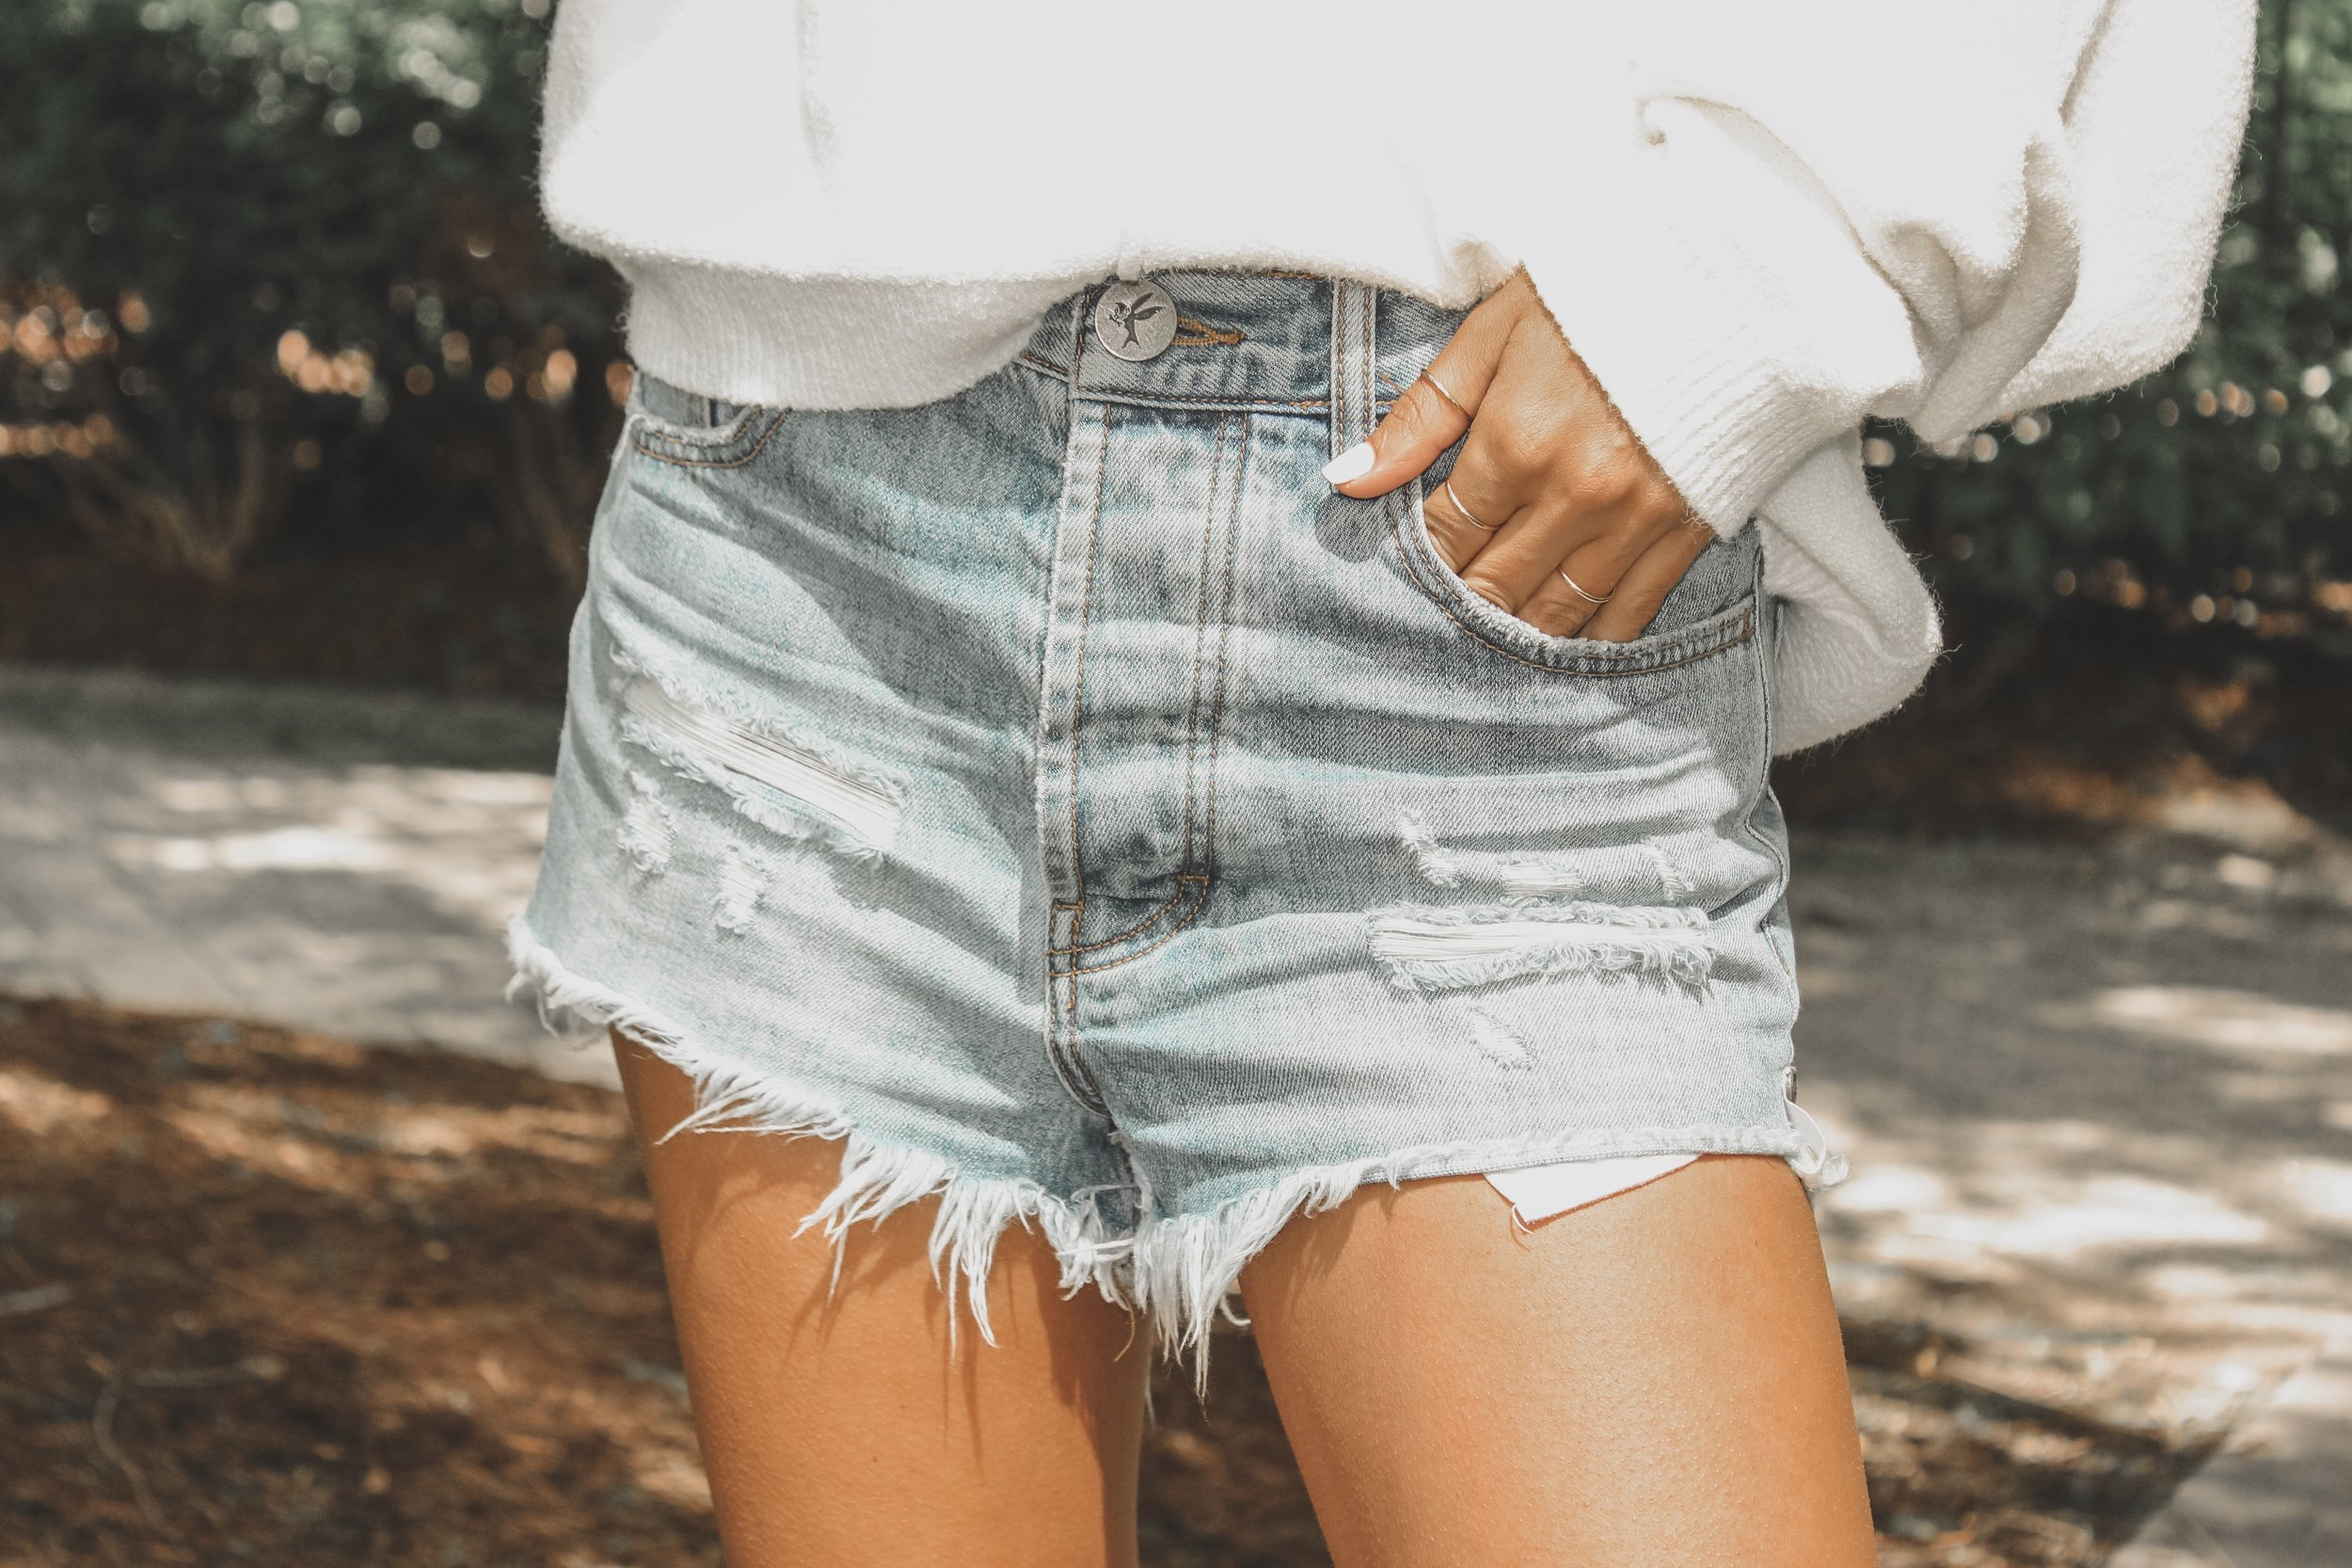 Outlaws Shorts -  shopbop  // Take Me Places Pullover -  Free People  // 14K Gold Rings -  Glamrocks Jewelry